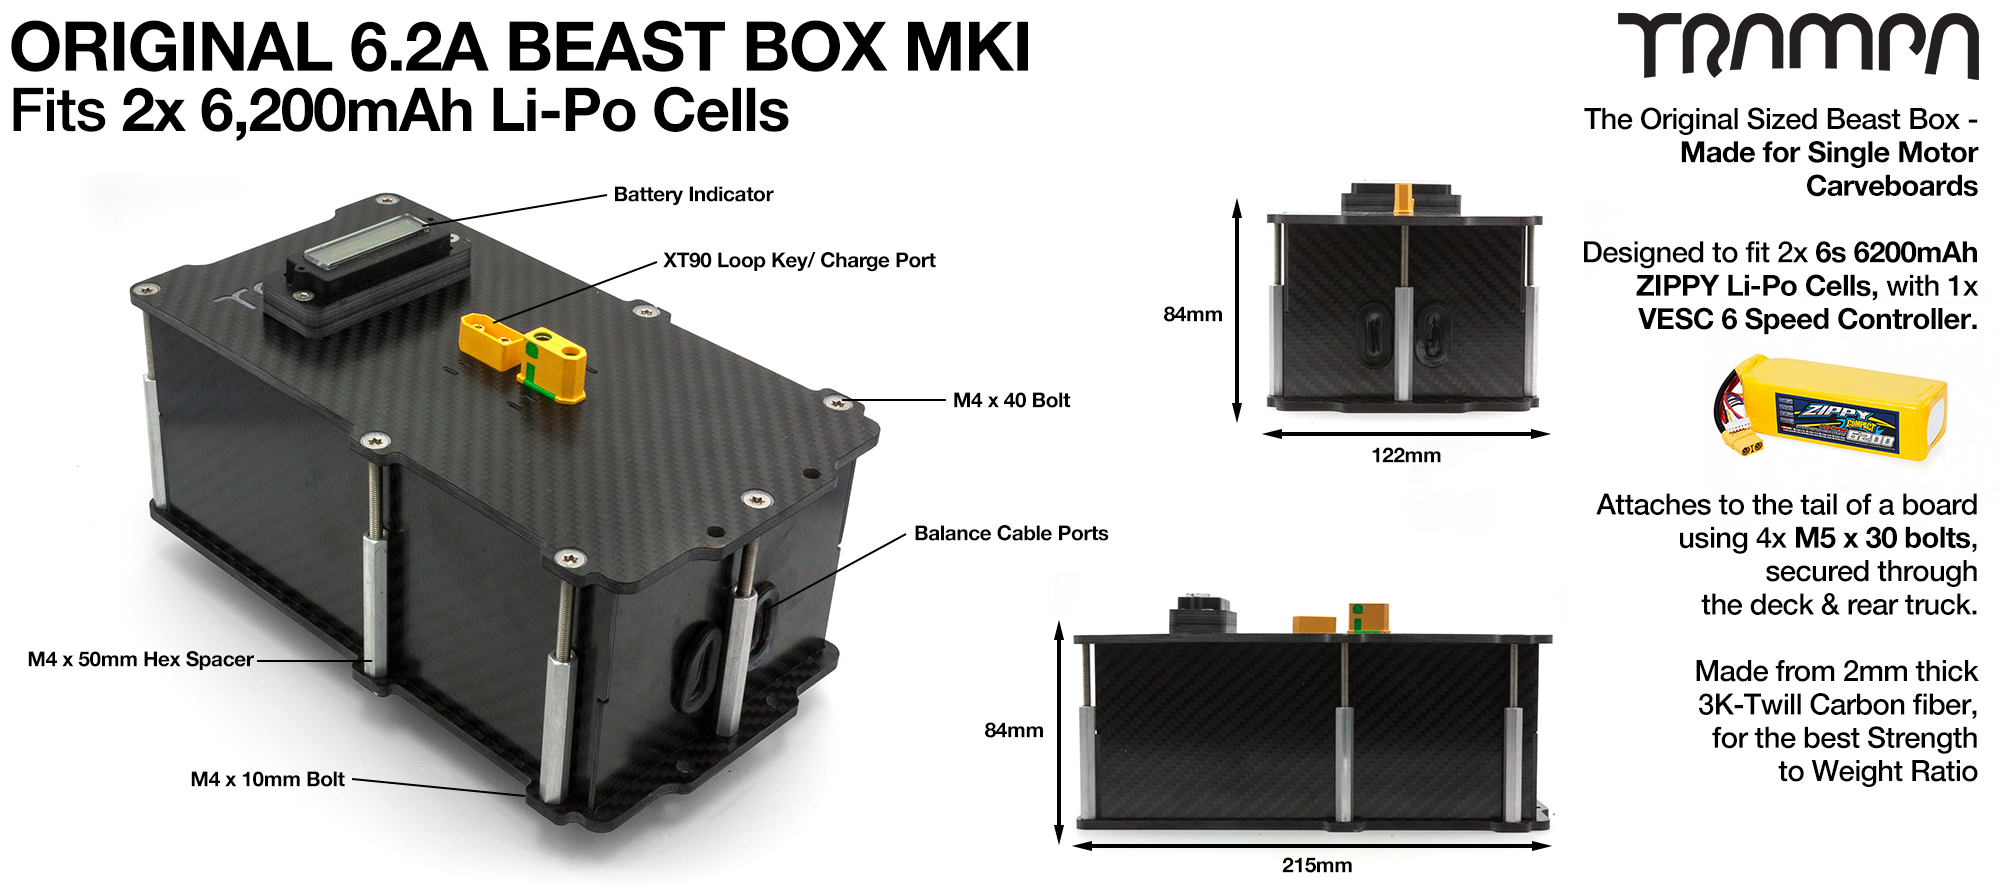 Original MkI 6.2Ah BEAST Box fits 2x Zippy Compact 6200 mAh cells with Internal VESC Housing - AWESOME